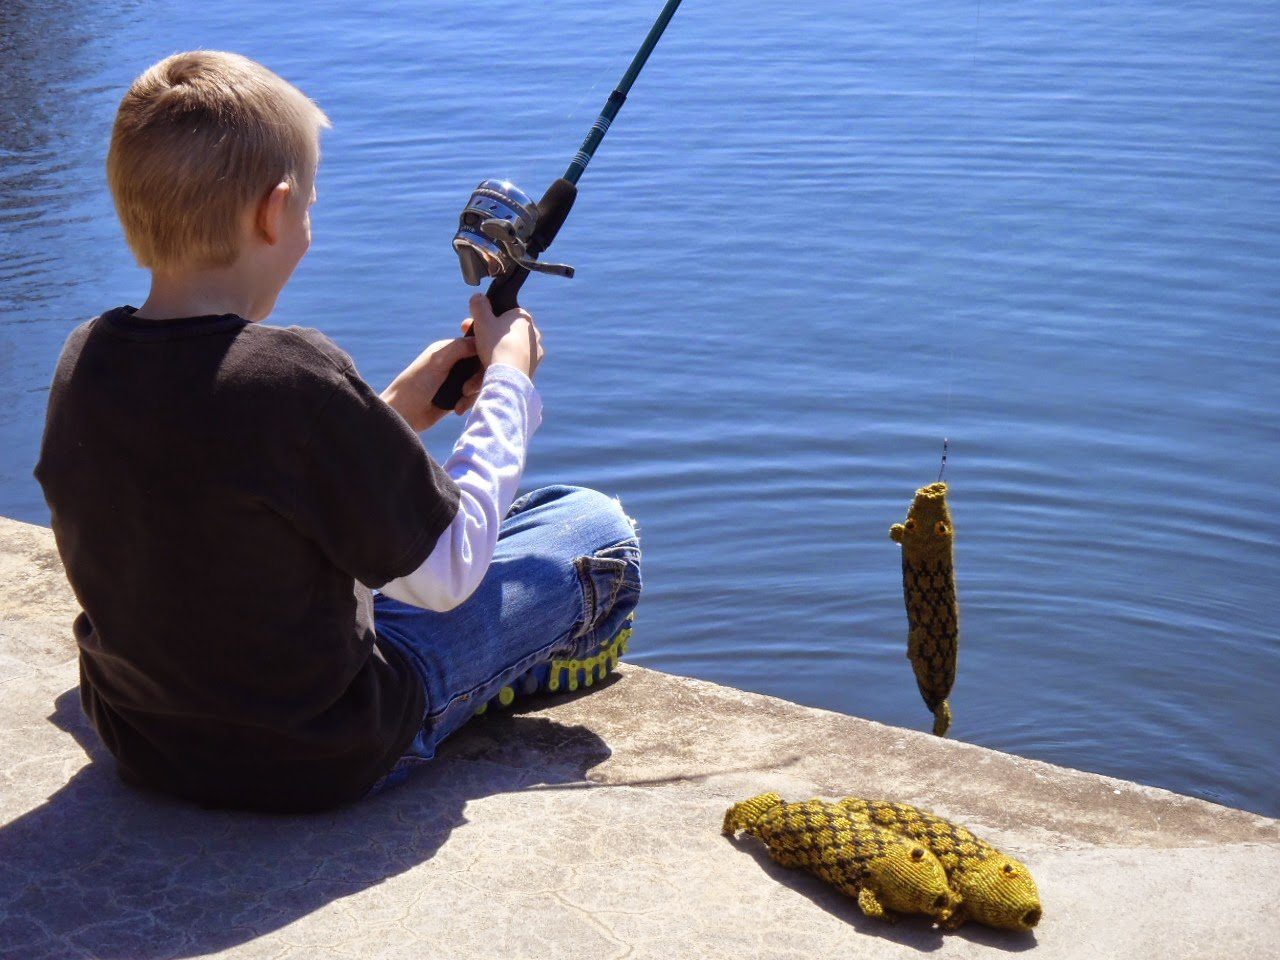 Charlie the fish with a boy fishing